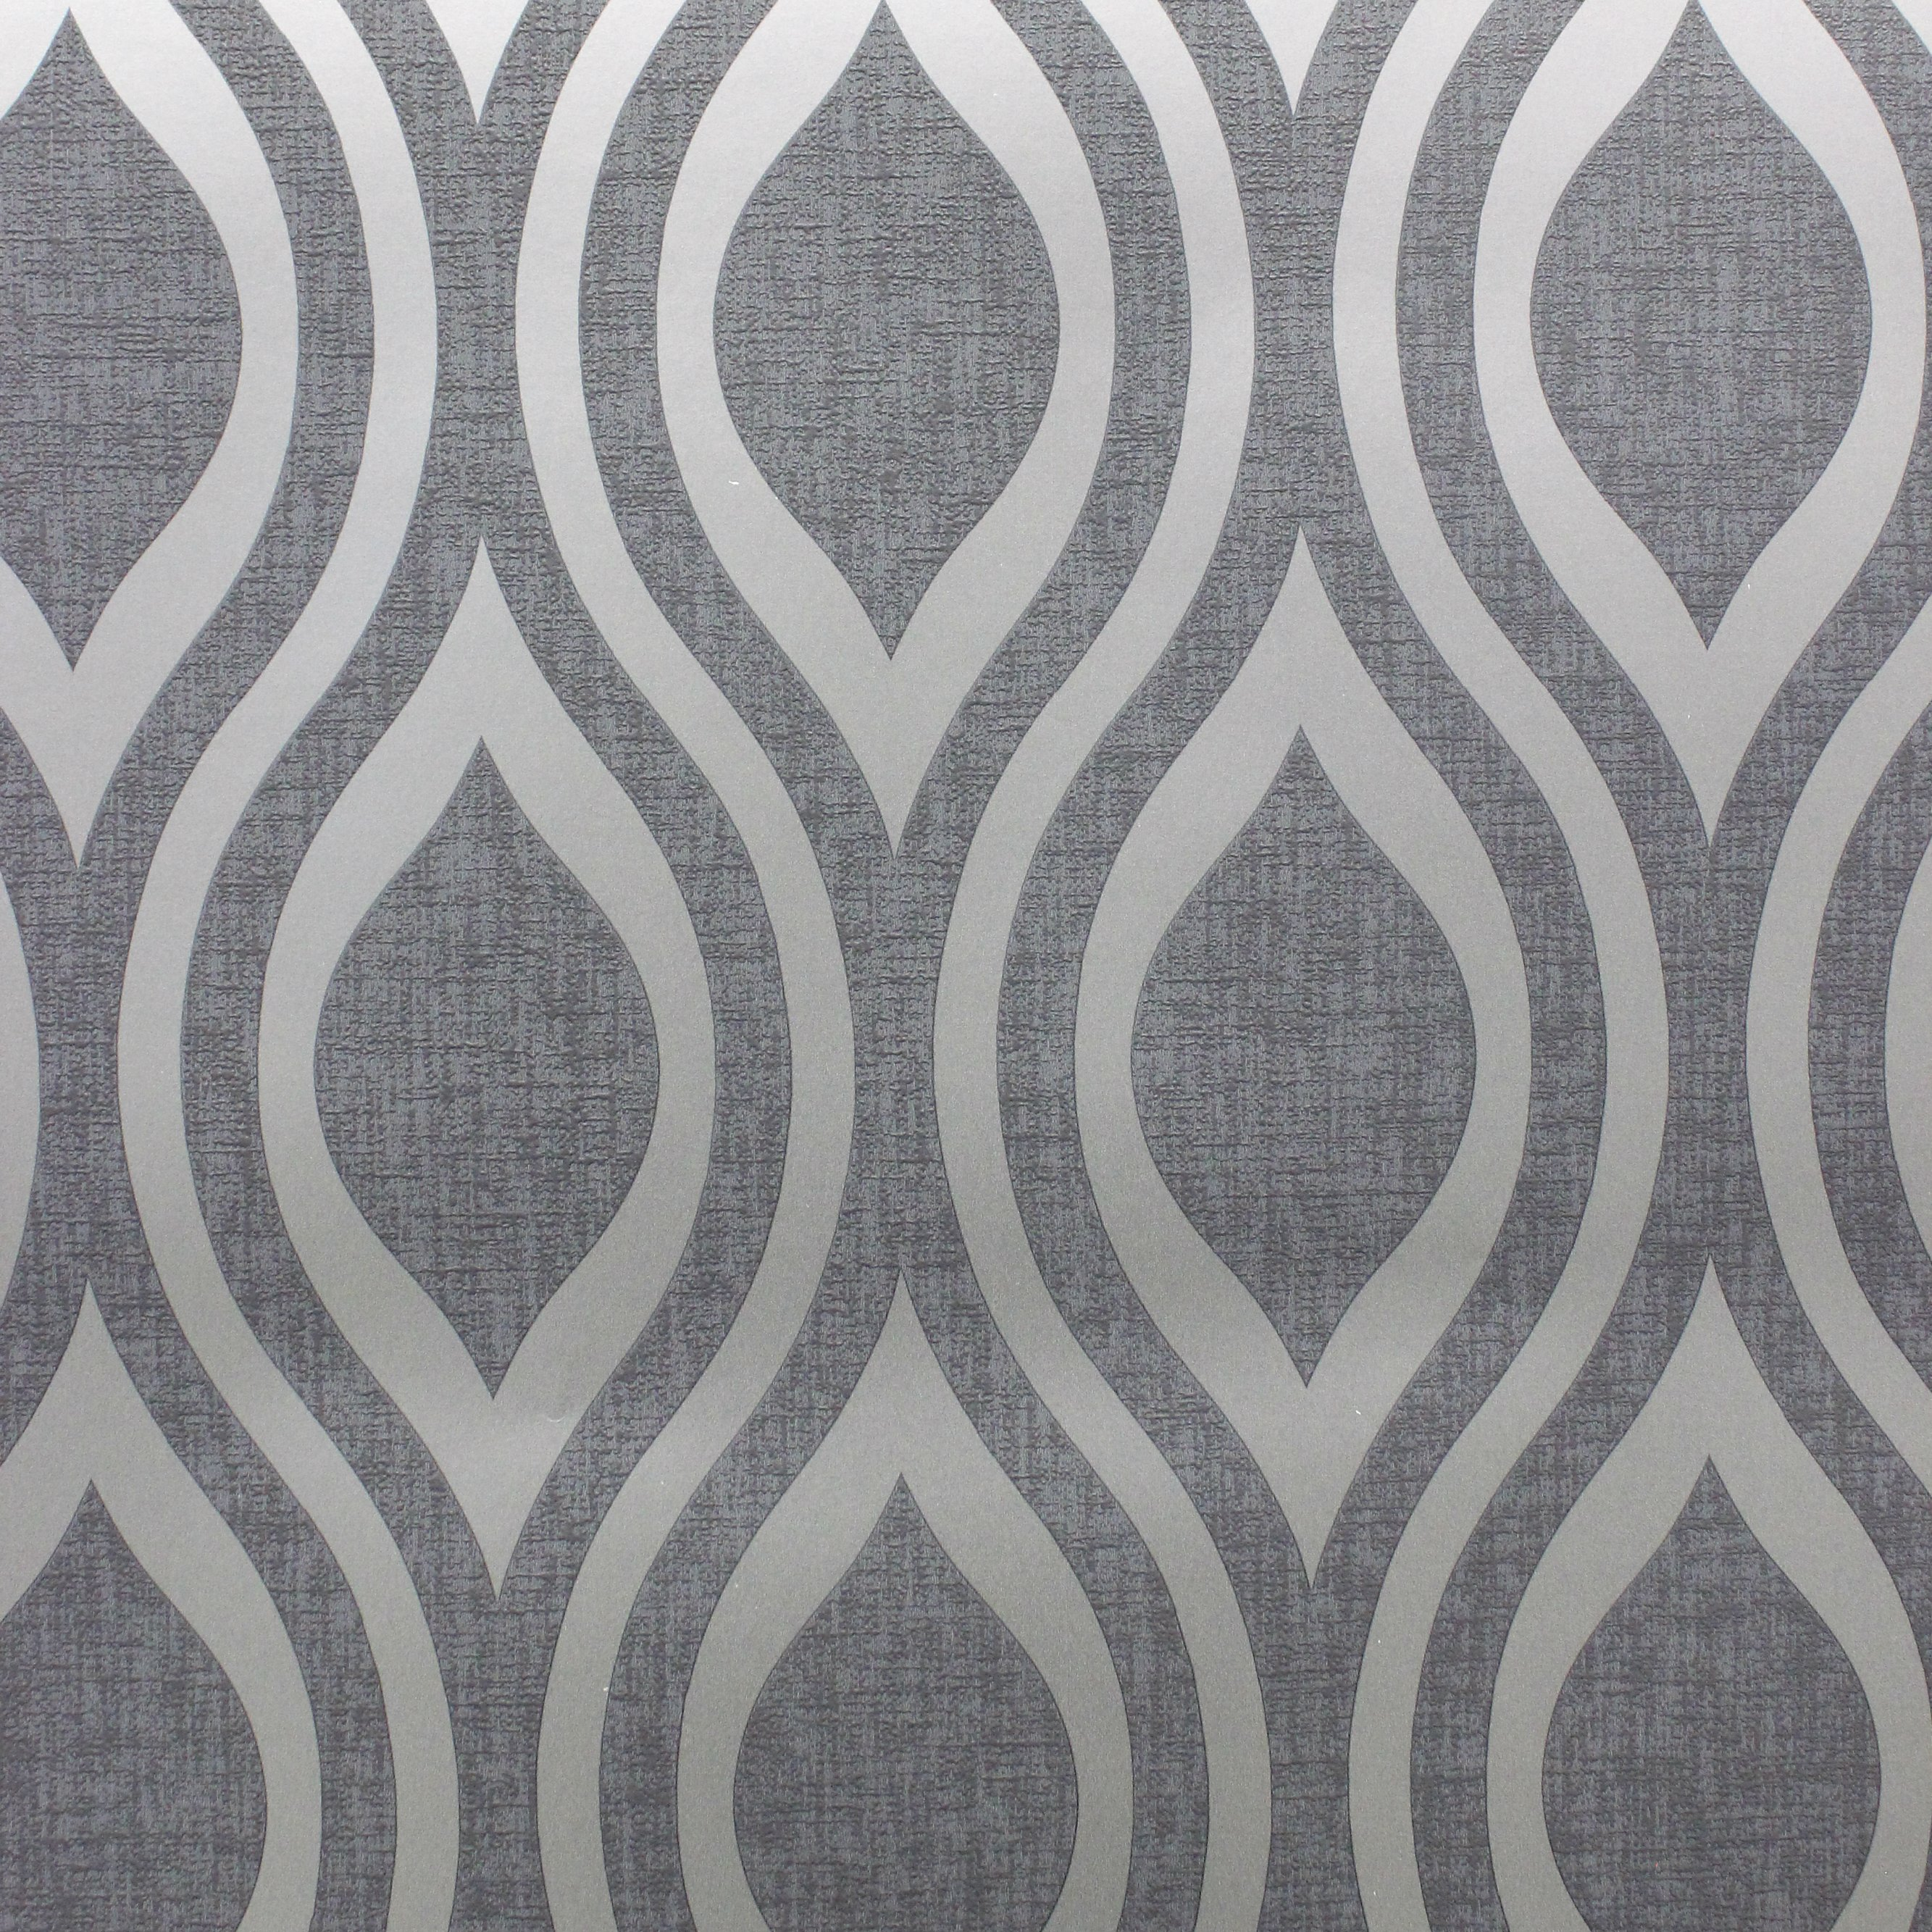 Luxe Ogee Gunmetal Grey Wave Arthouse 910202 Wallpaper